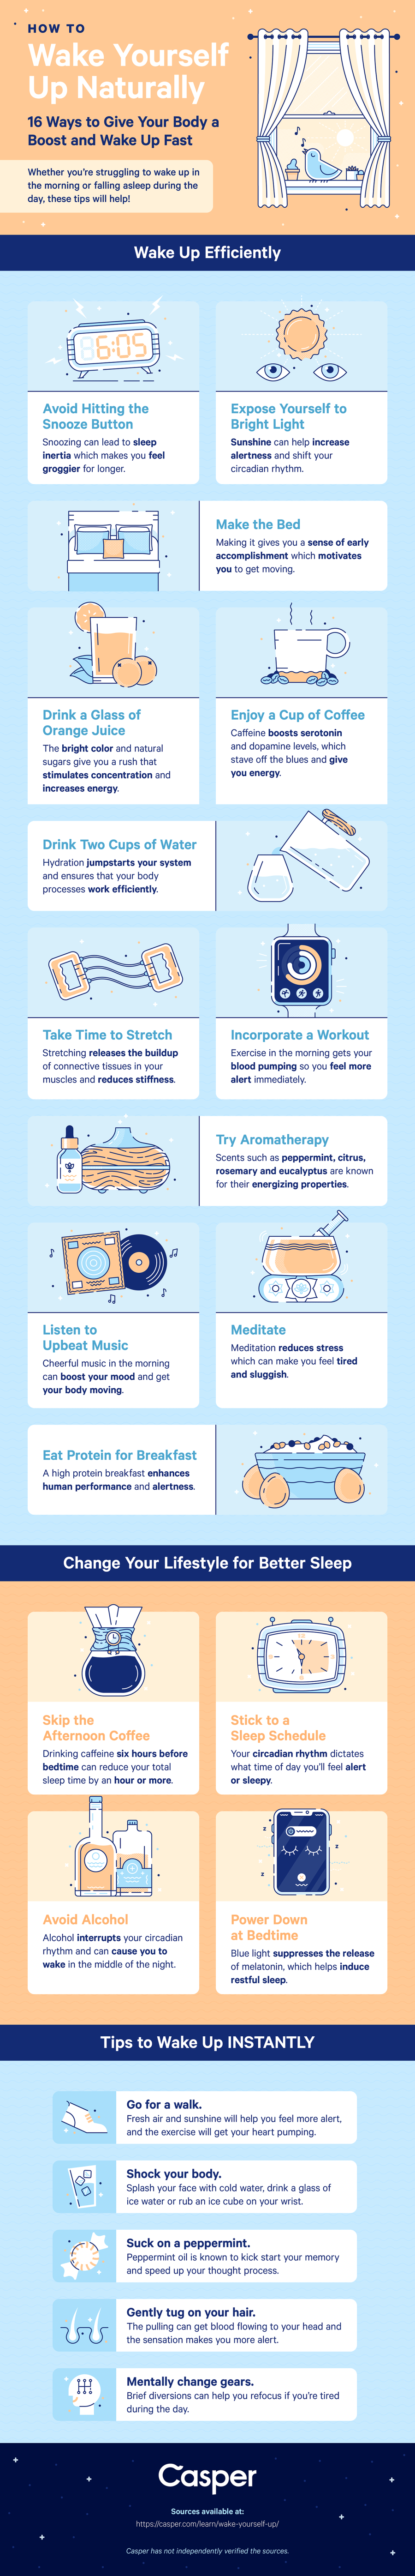 How to Wake Up Naturally